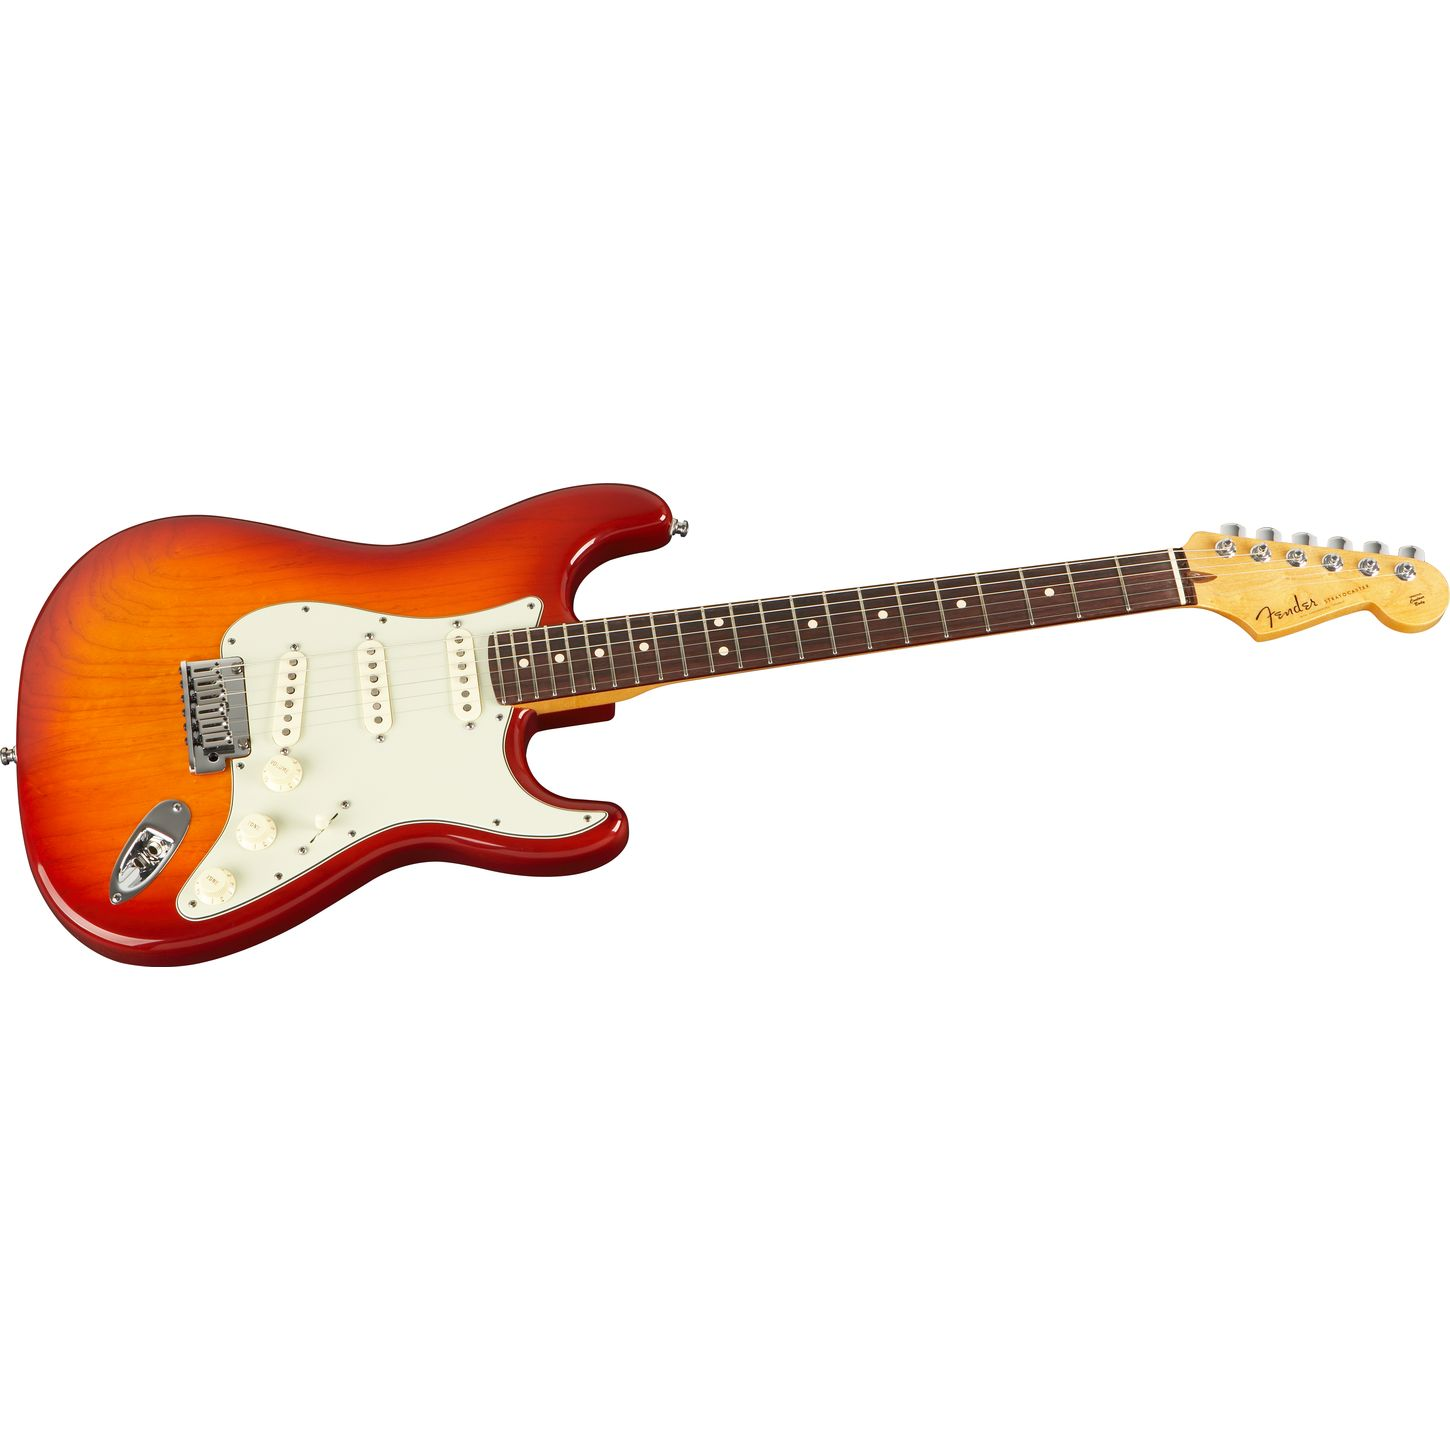 Musician's Friend goes in-depth with the Fender American Professional Series Electric Guitars and Basses! We take a close look at the Stratocaster, Telecaster, Jazz Bass, Precision Bass and more.